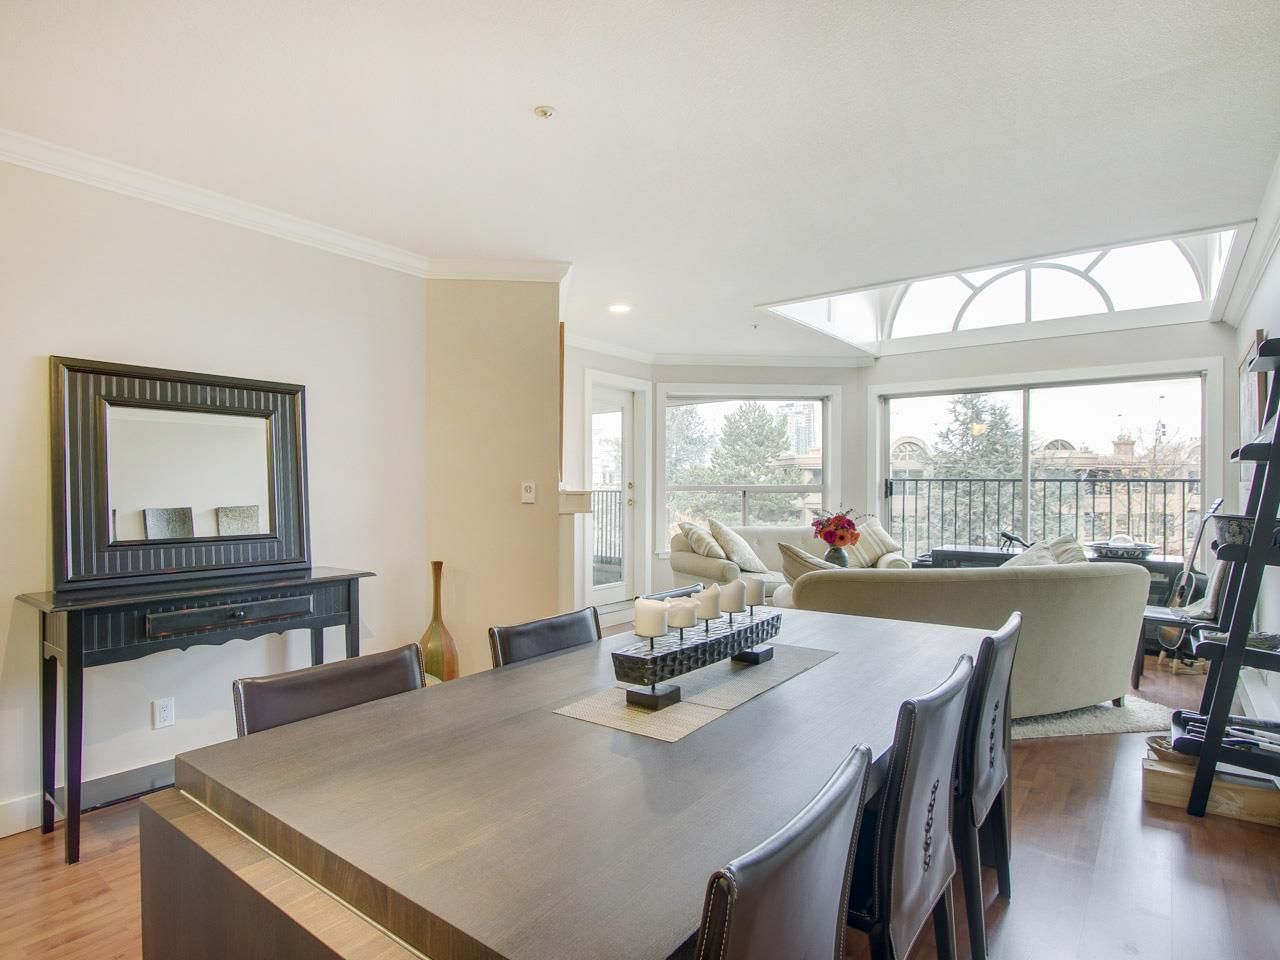 """Main Photo: 408 525 WHEELHOUSE Square in Vancouver: False Creek Condo for sale in """"HENLEY COURT"""" (Vancouver West)  : MLS®# R2123953"""